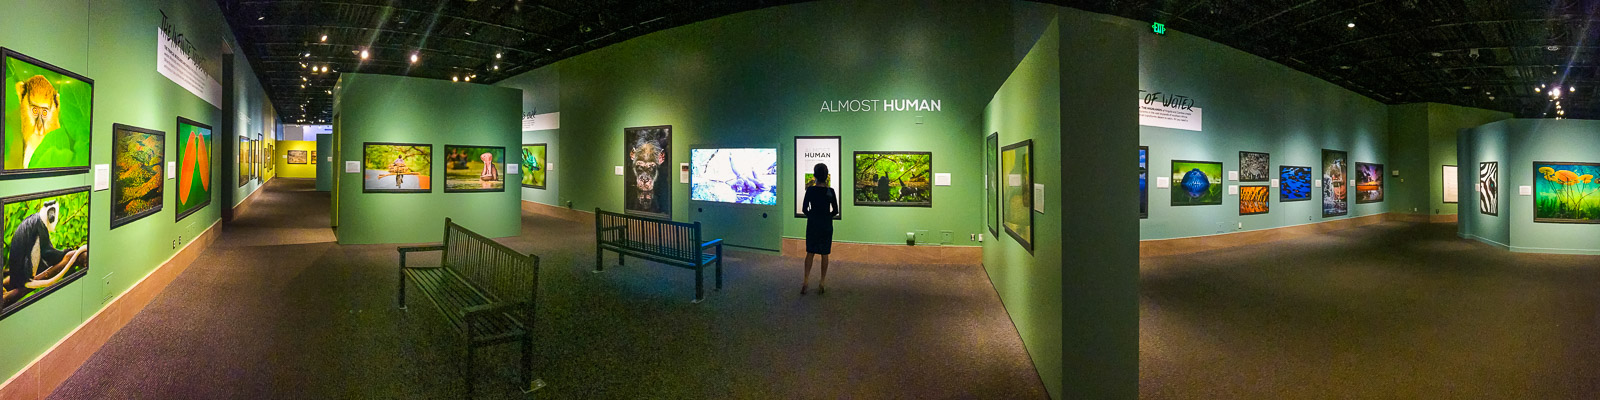 Frans Lanting's Into Africa exhibit at the Smithsonian National Museum of Natural History, Washington D.C., USA